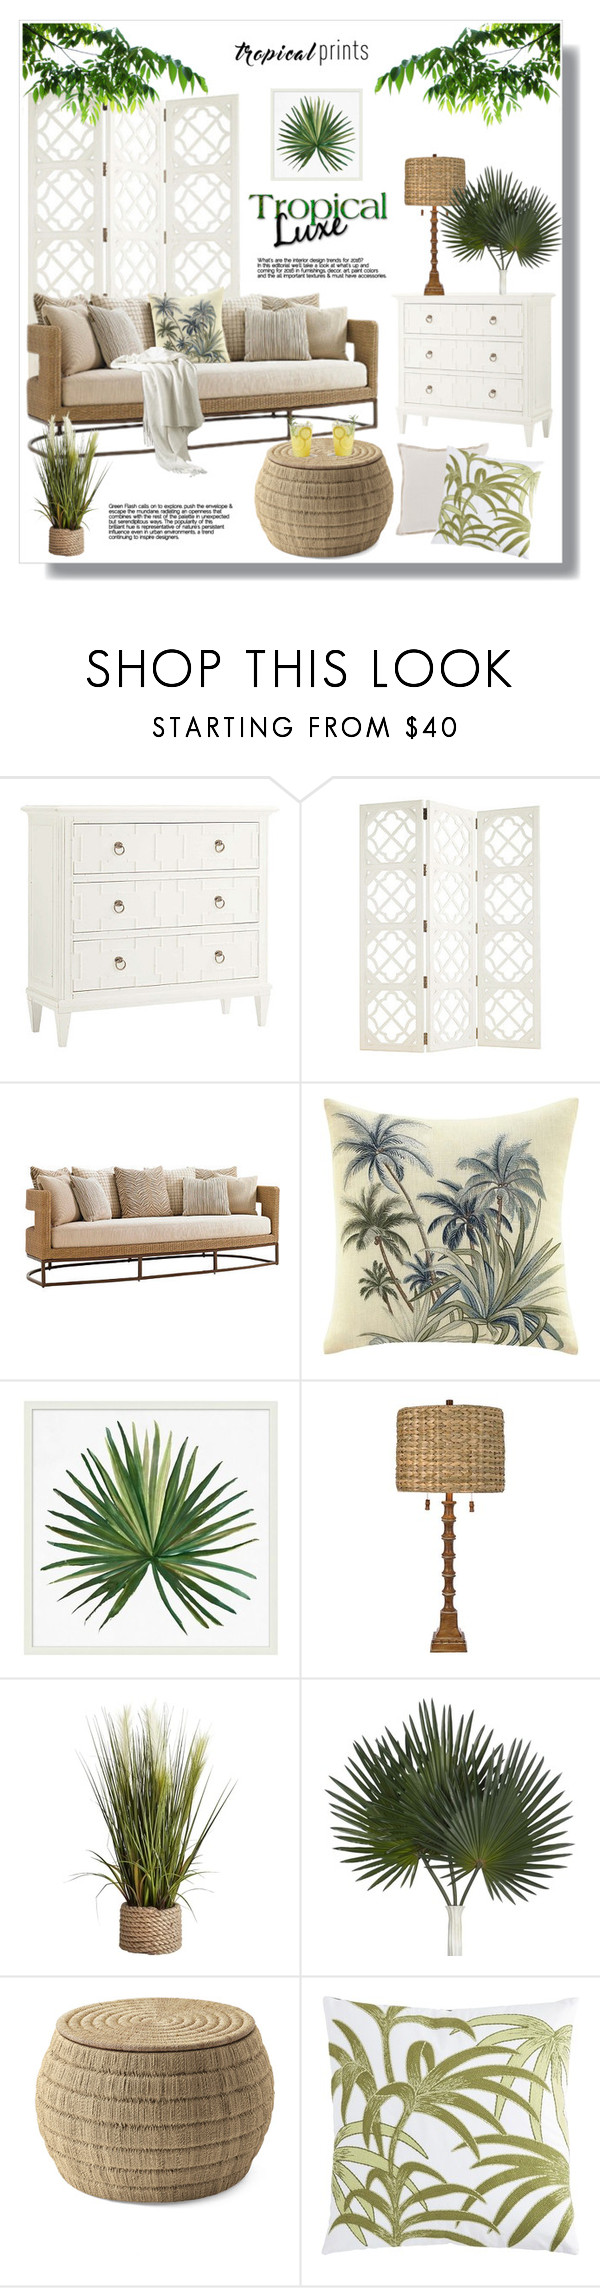 """""""Tropical prints"""" by jelenamaks ❤ liked on Polyvore featuring interior, interiors, interior design, home, home decor, interior decorating, Frontgate, Tommy Bahama, Pottery Barn and Pier 1 Imports"""